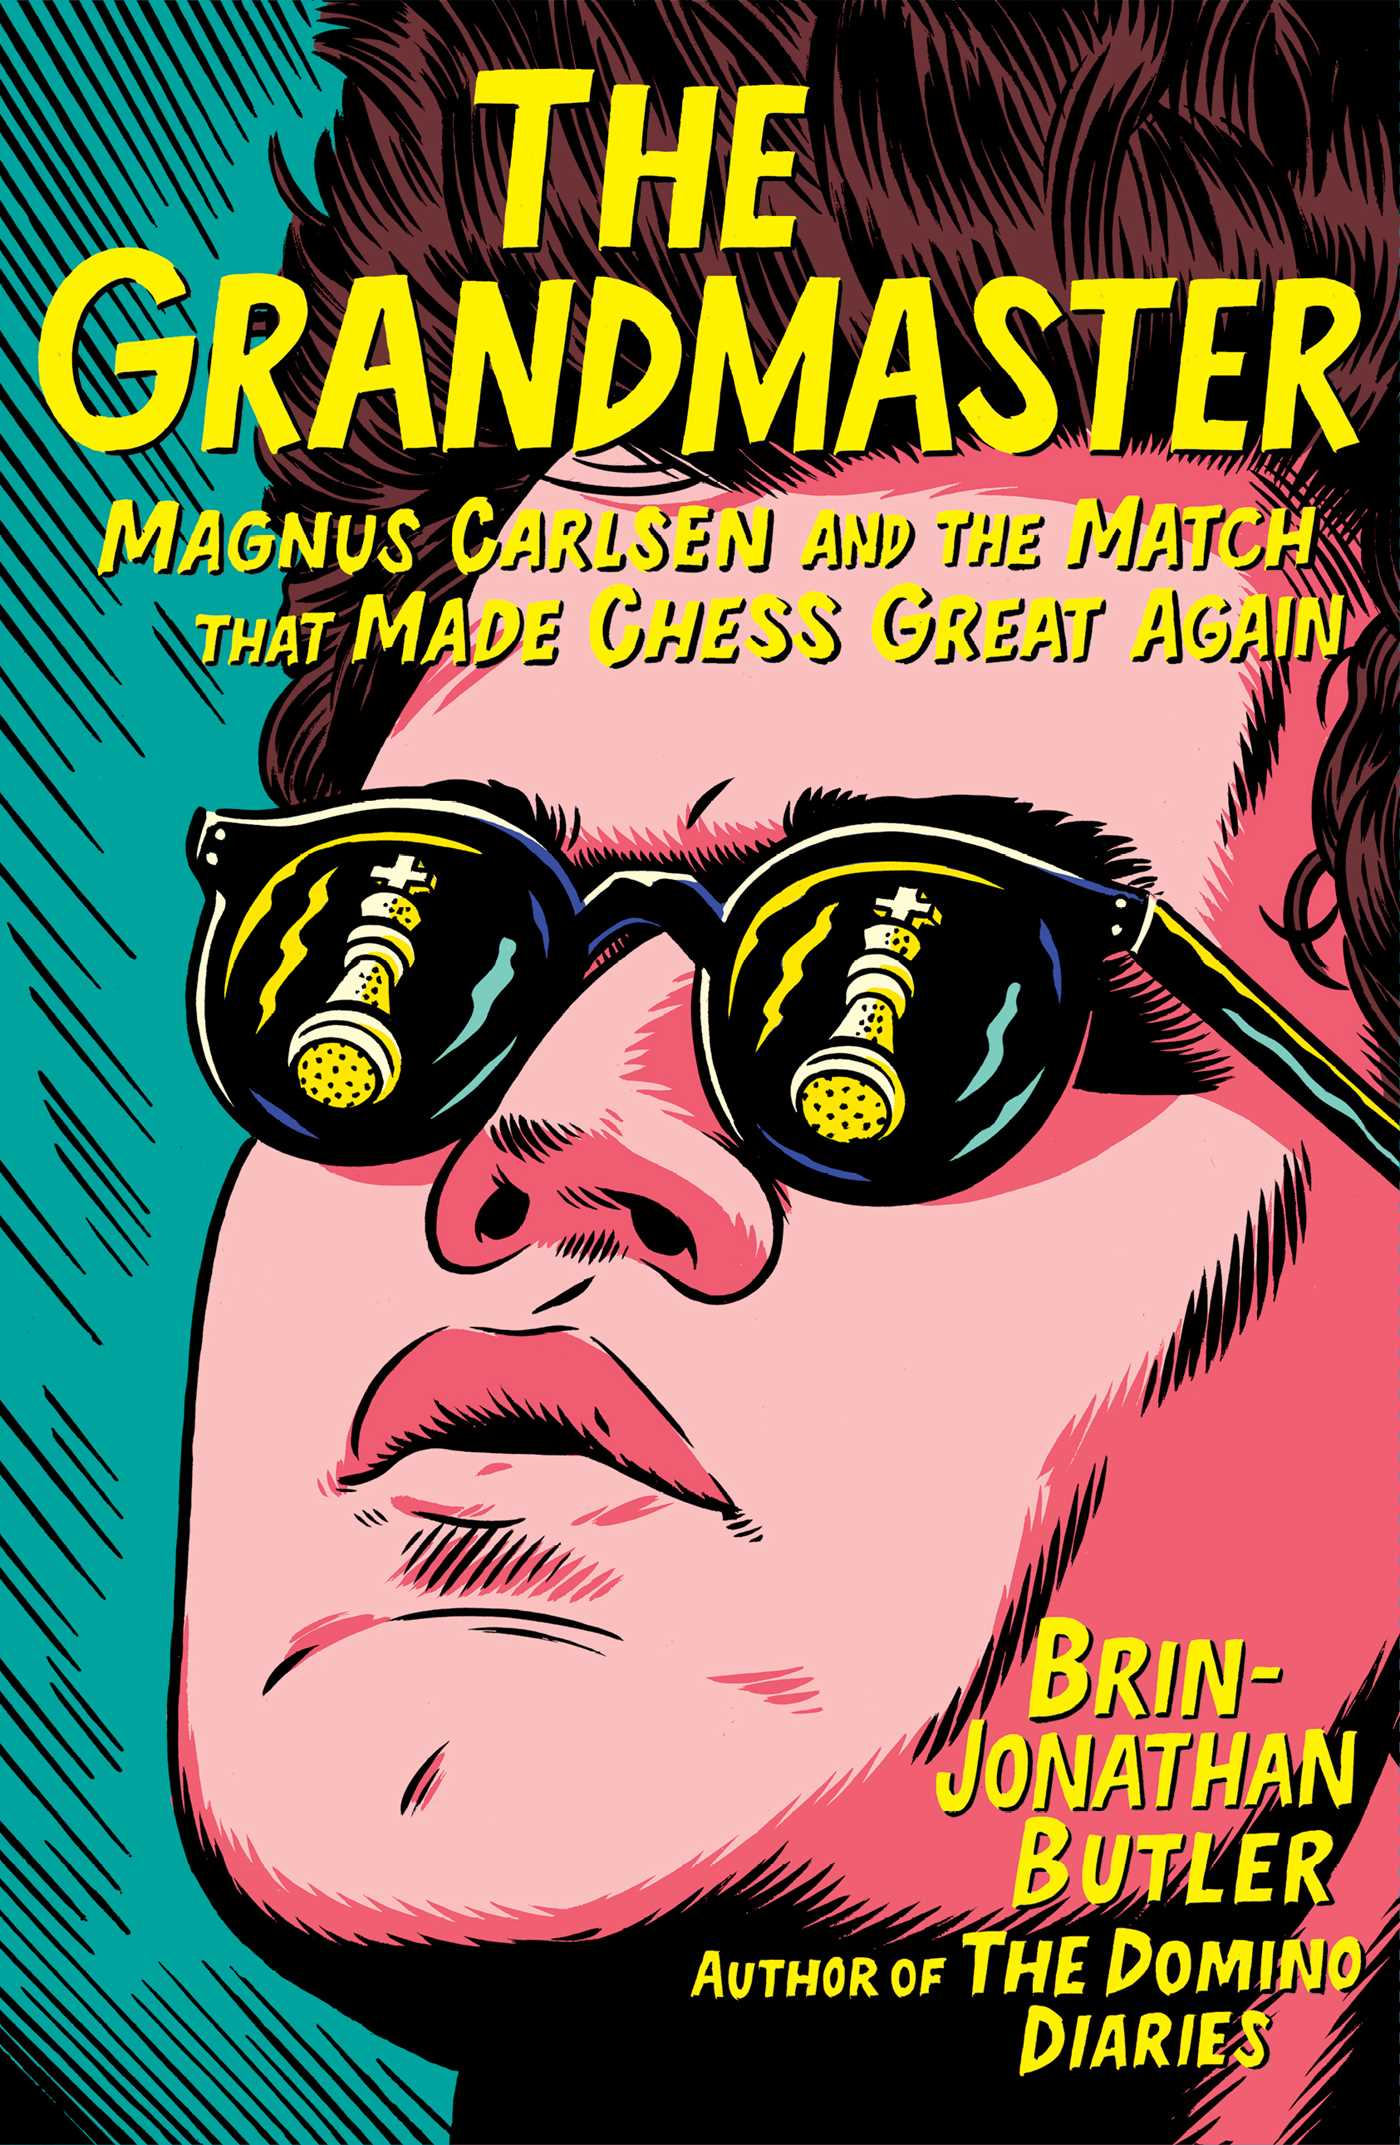 Book Cover Image (jpg): The Grandmaster